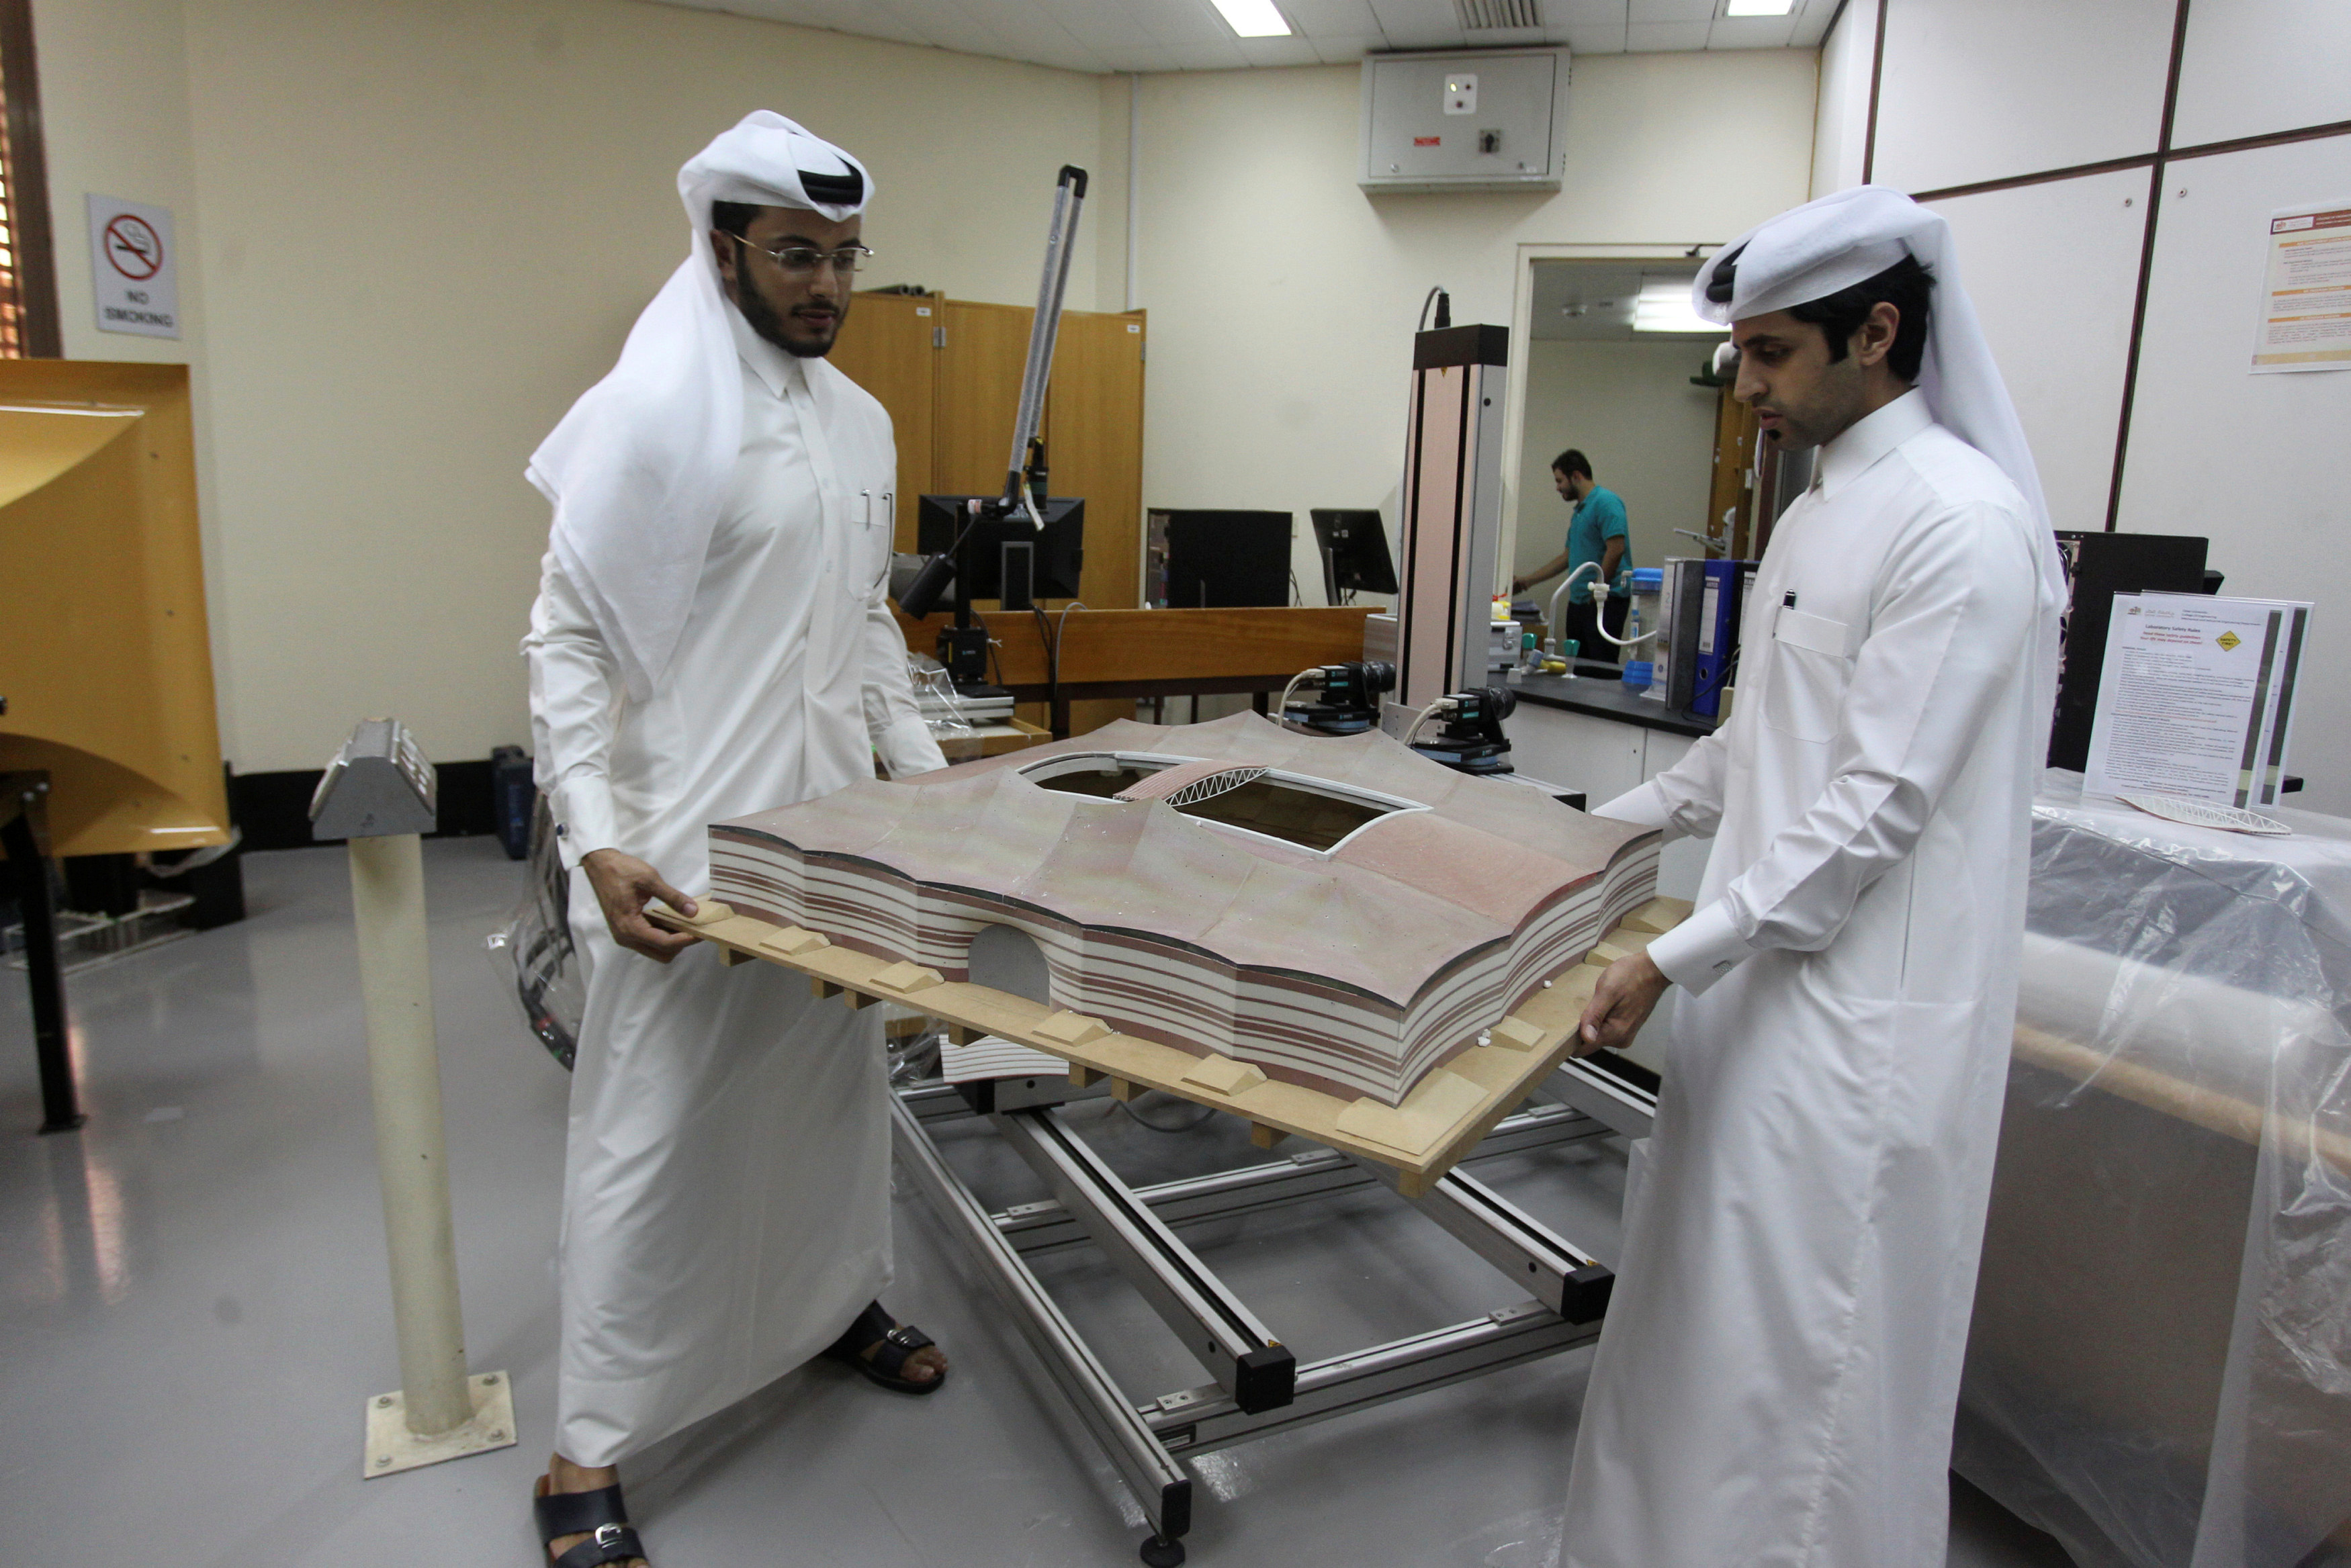 Mechanical engineers Abdullah Mojeb Aldar (L) and Fahad al-Musalam move a 3-D-printed model of Qatar's Al Bayt stadium, which will host a World Cup semi-final in 2022, at a laboratory at Qatar University in Doha, June 16, 2016. (Reuters)